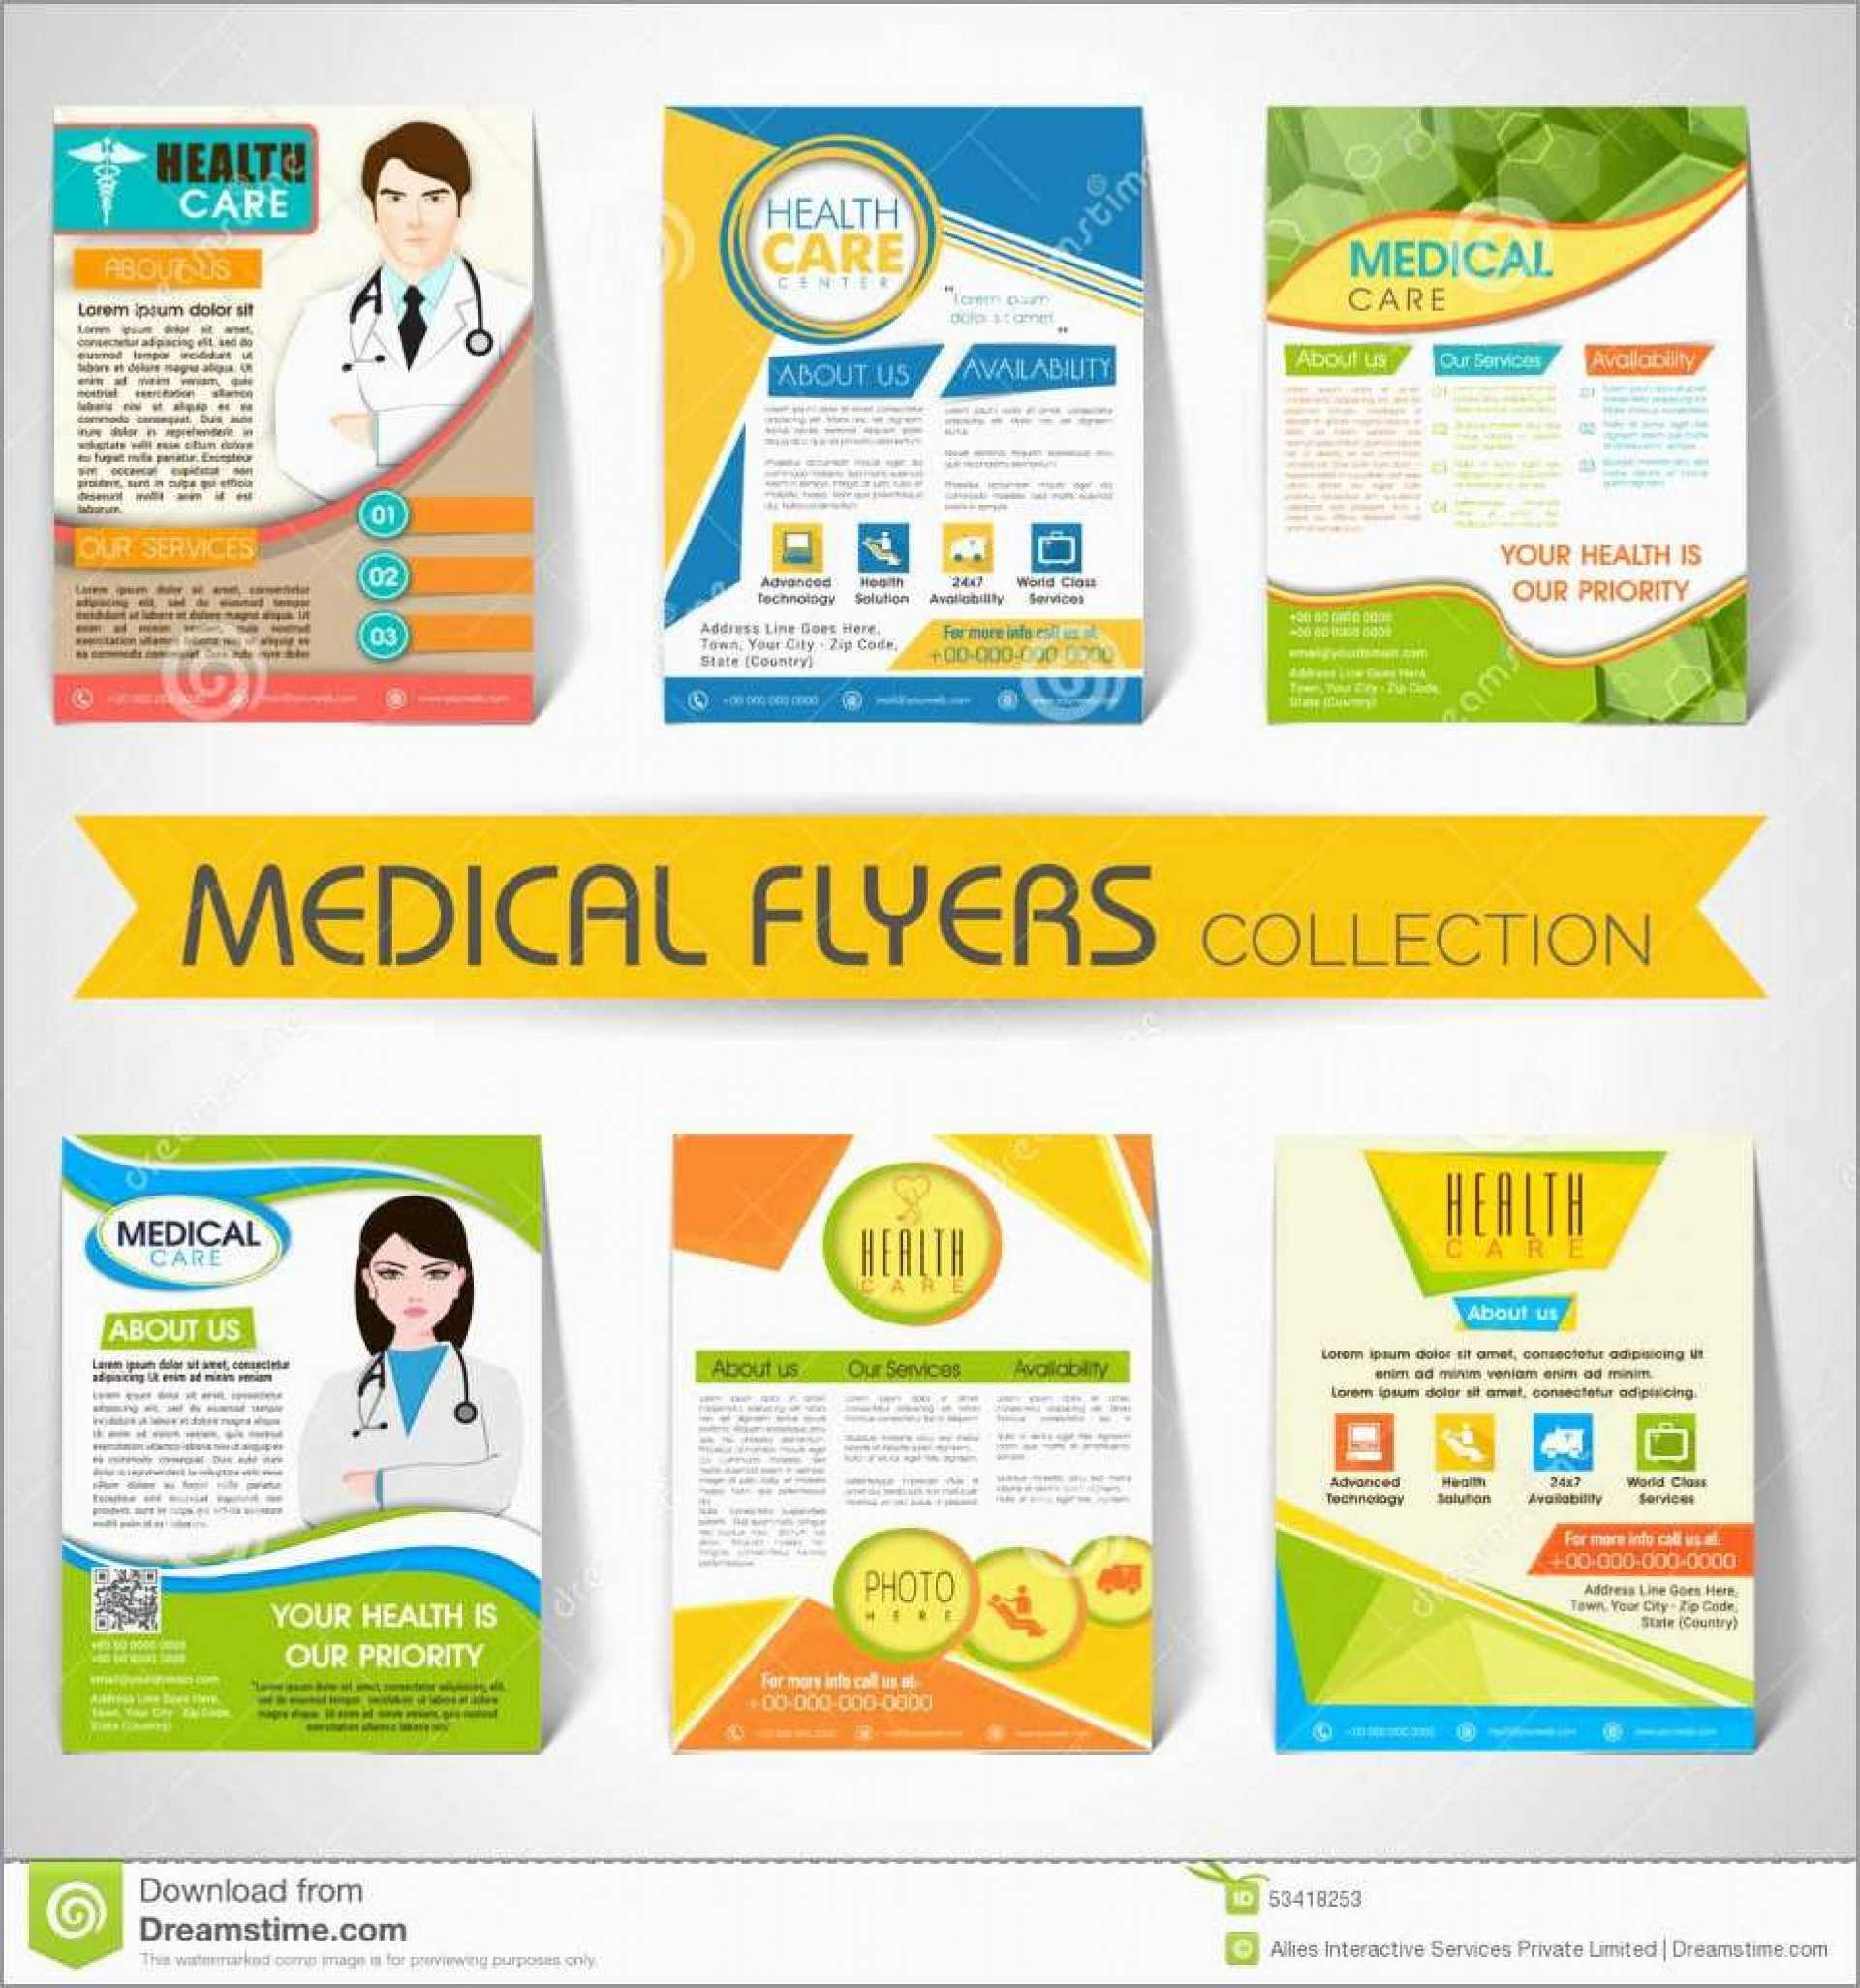 005 Free Health Fair Flyer Template Navos Healthfair Within Free Health Flyer Templates